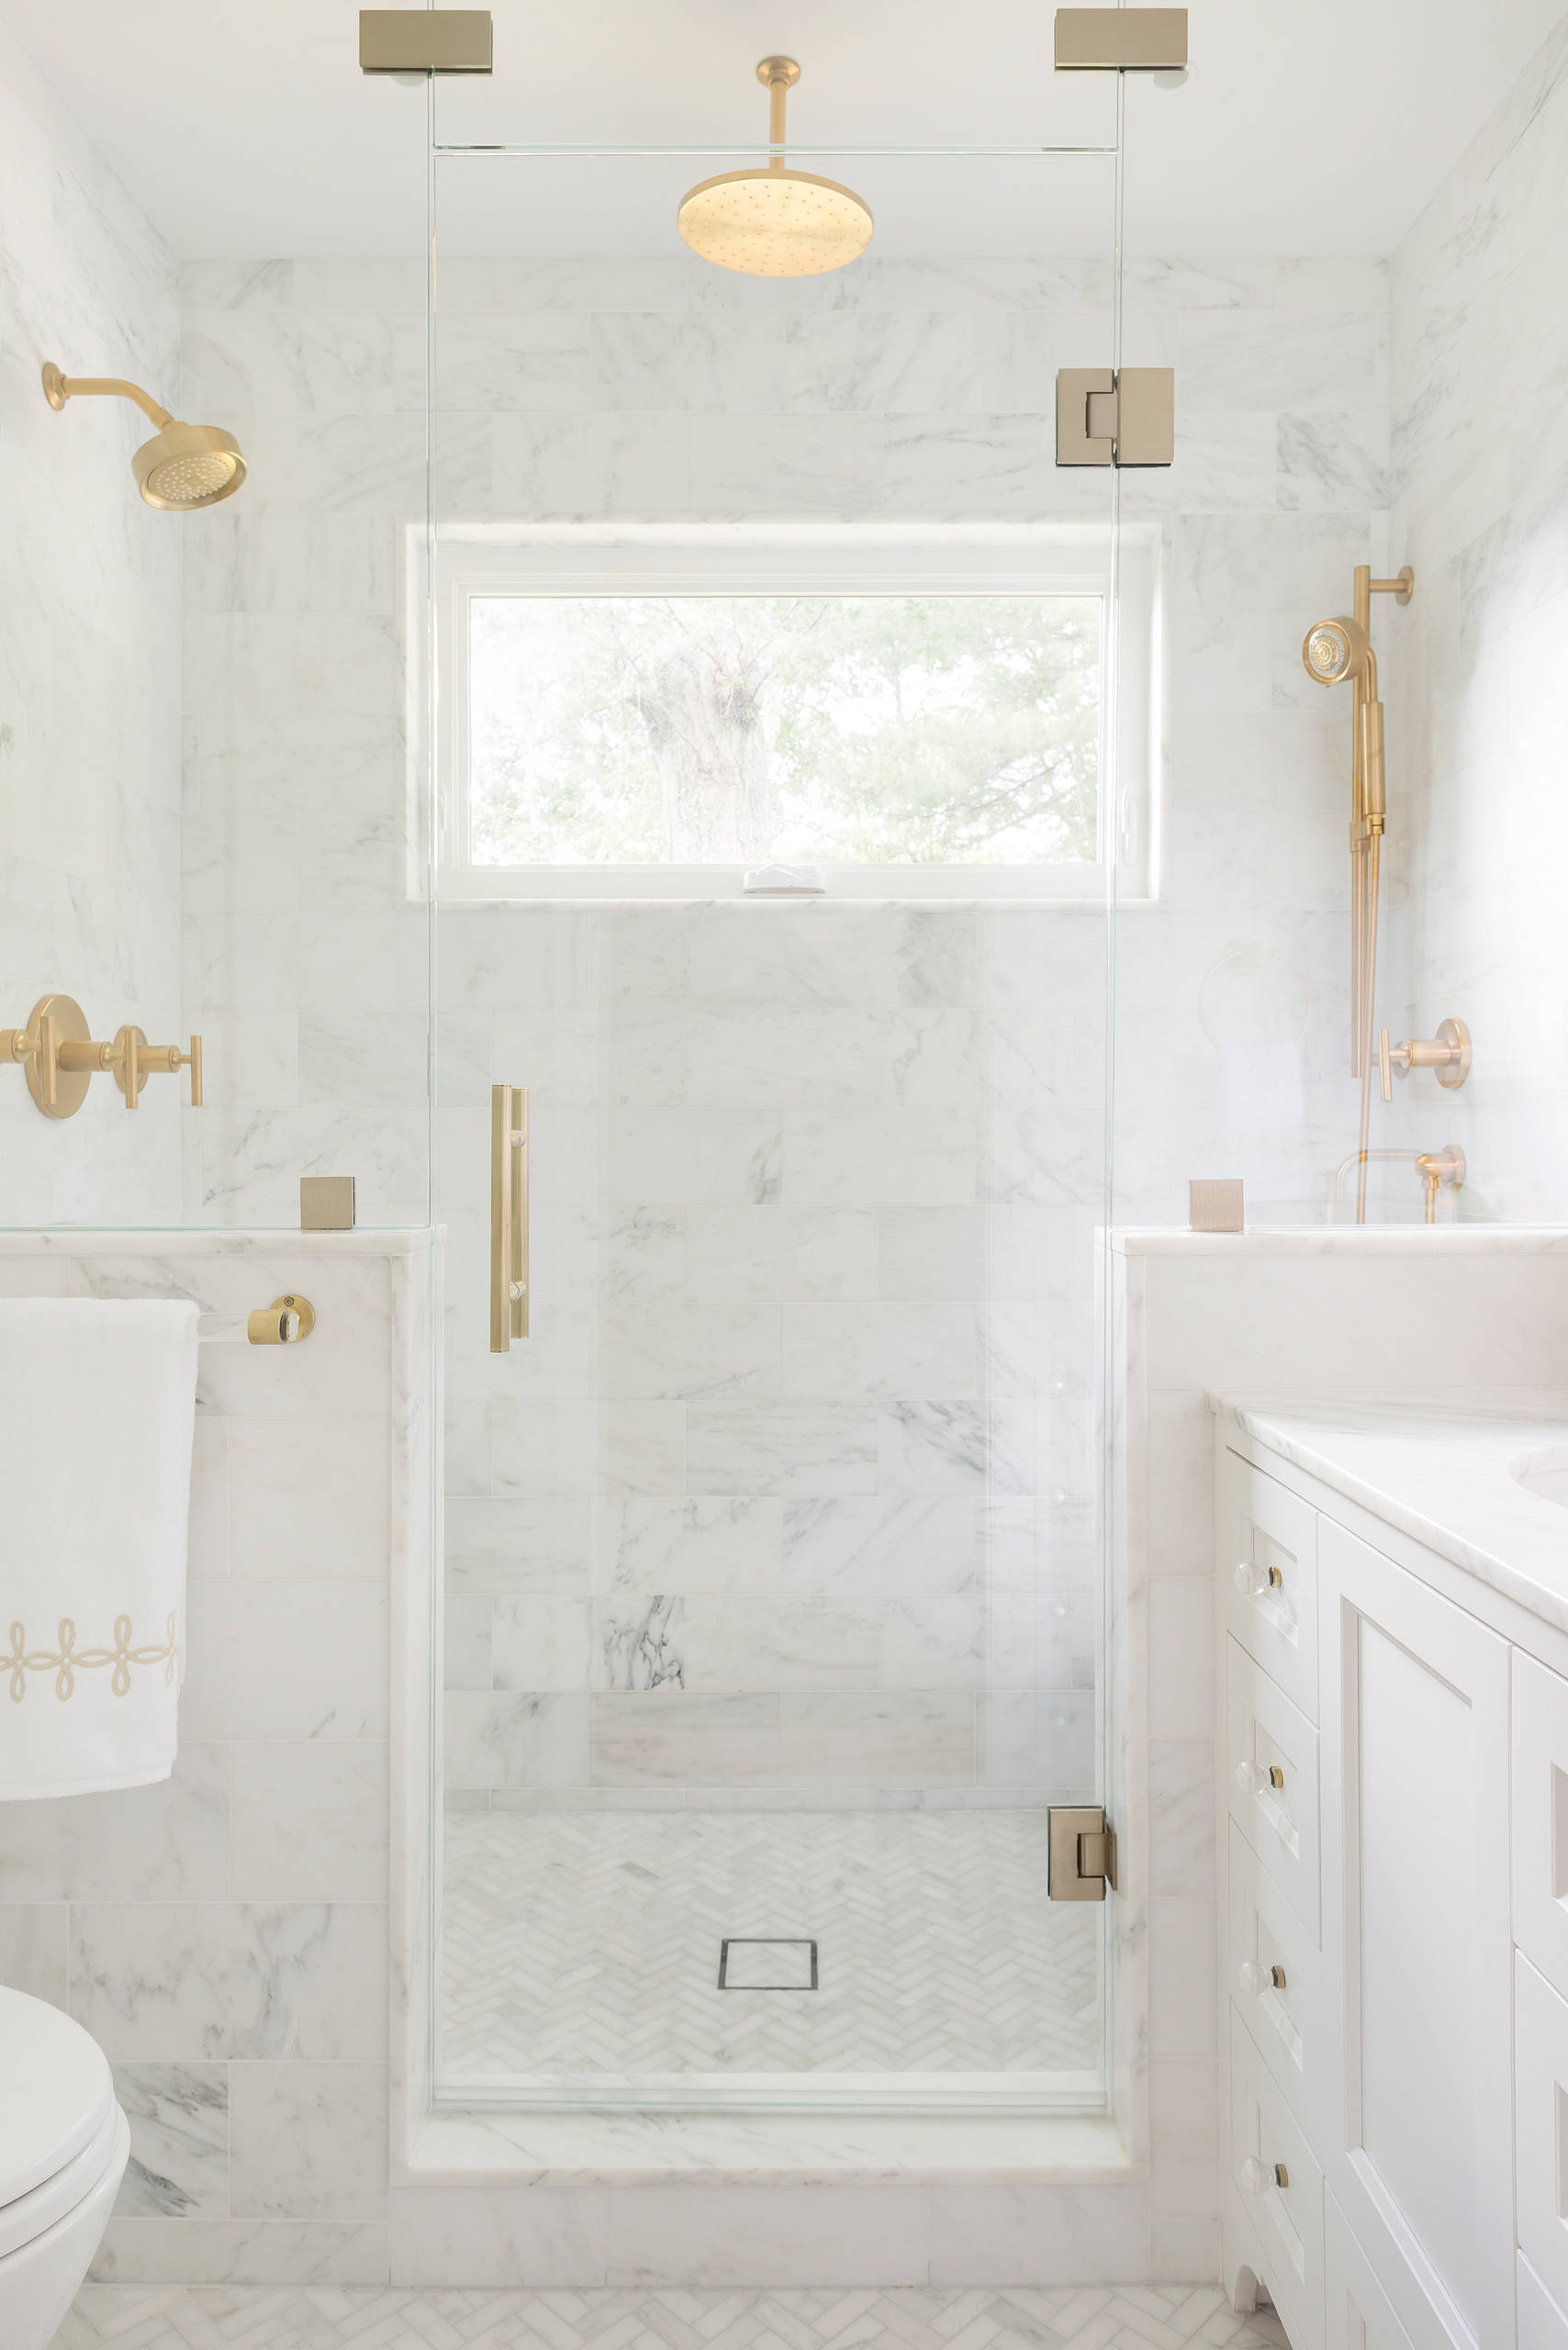 75 Beautiful Bathroom With A Wall Mount Toilet Pictures Ideas January 2021 Houzz